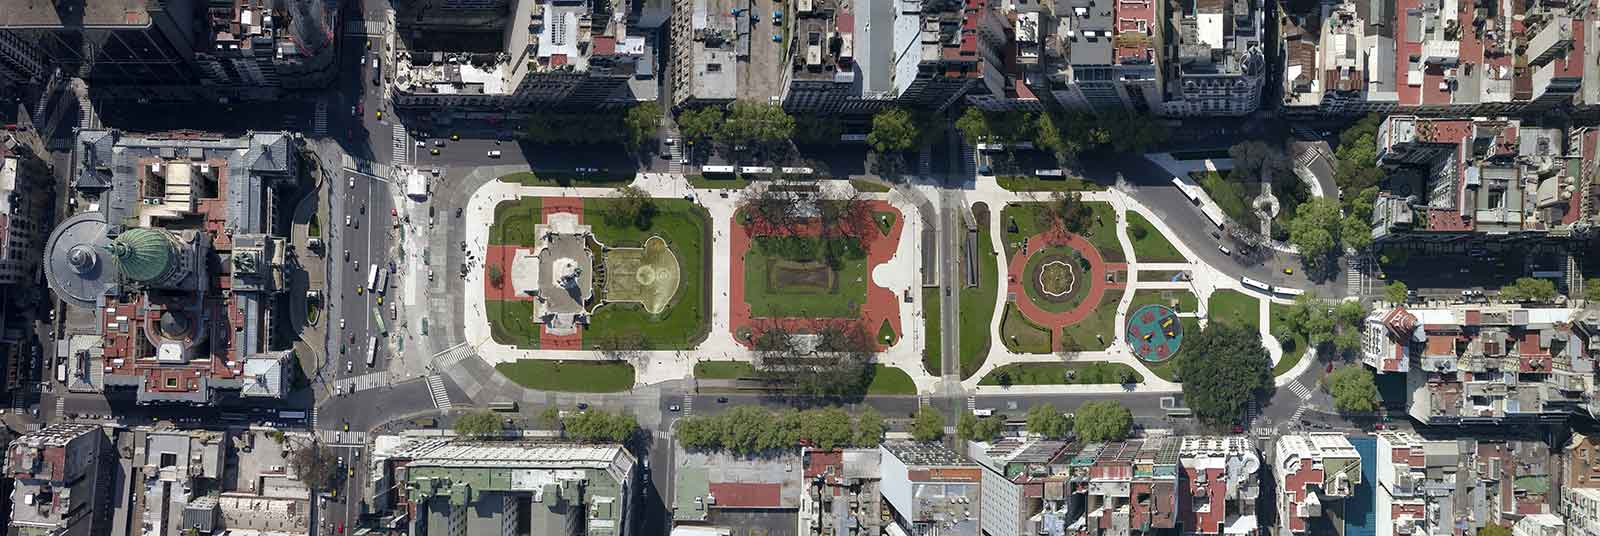 Architecture photography - Plaza Congreso - Buenos Aires